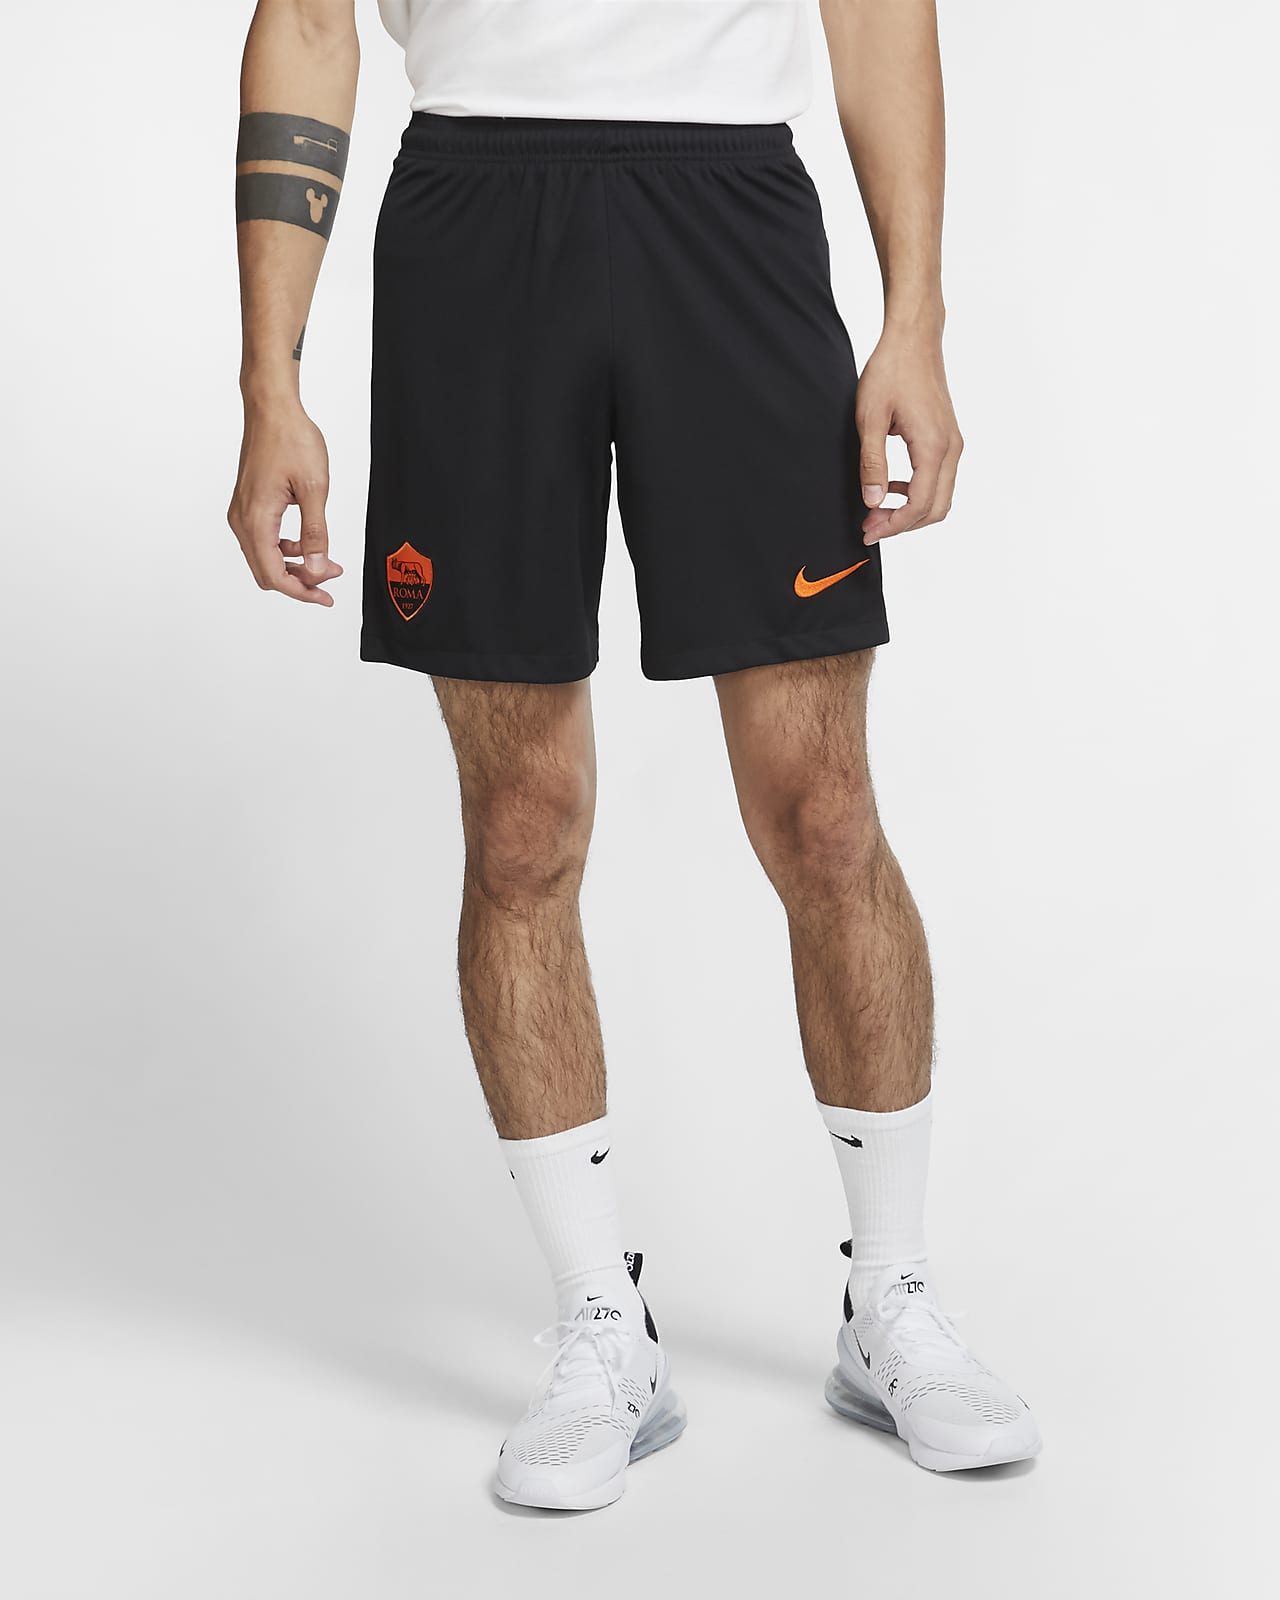 AS Roma 2020/21 Stadium Third Men's Football Shorts